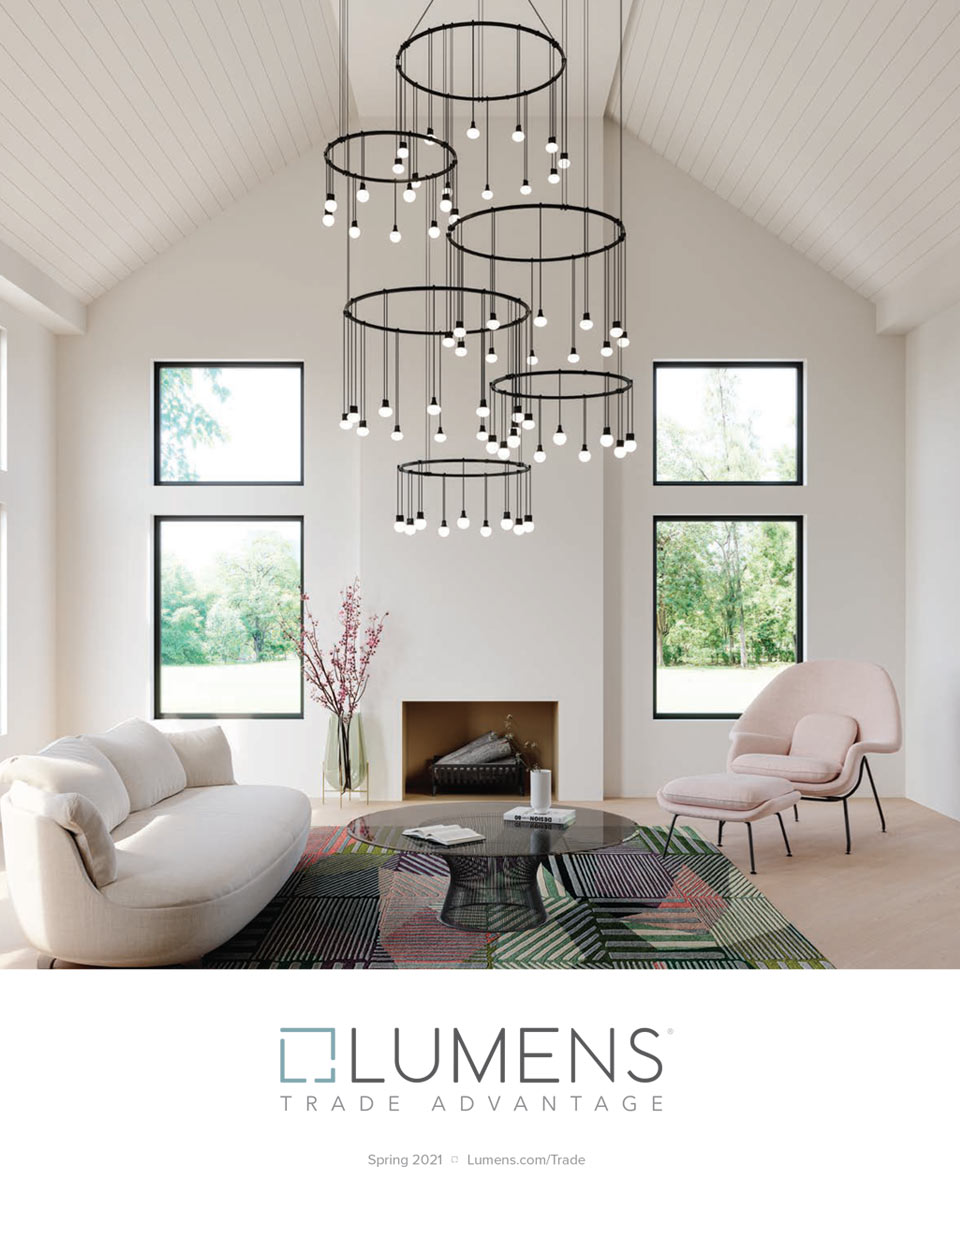 View the Lumens 2021 Spring eCatalog